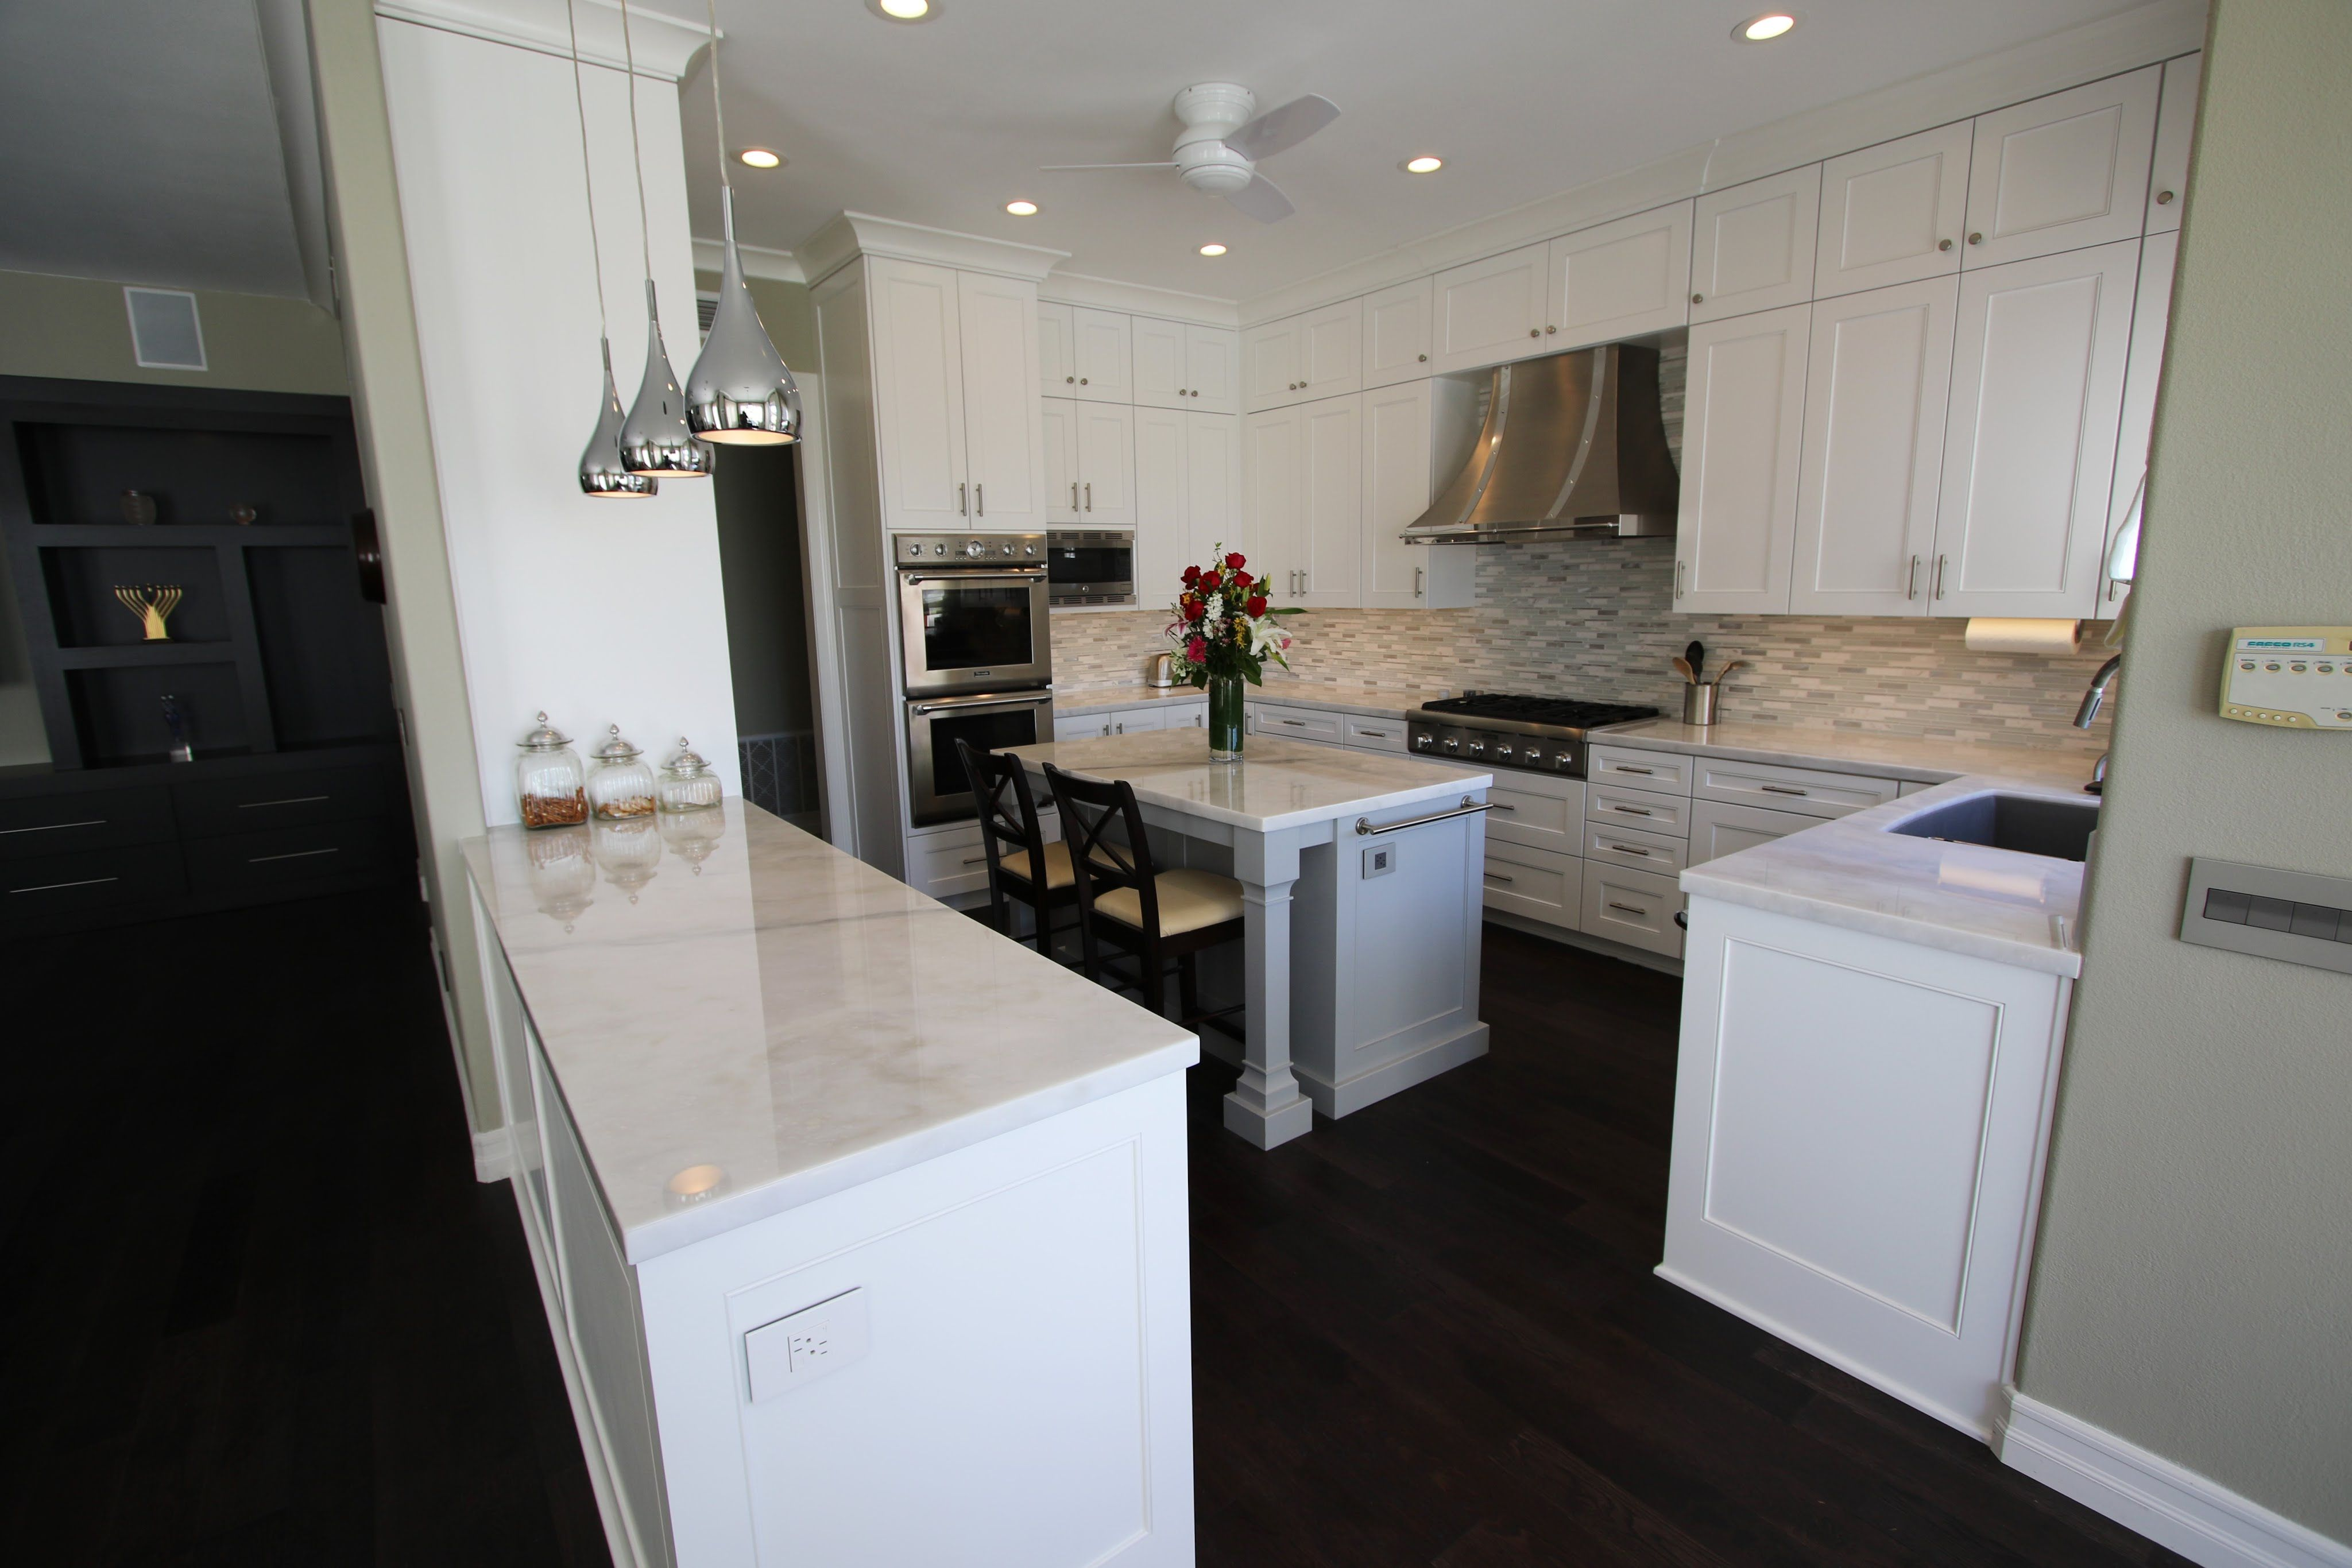 Located In Laguna Niguel These Homeowners Wanted To Swap Their